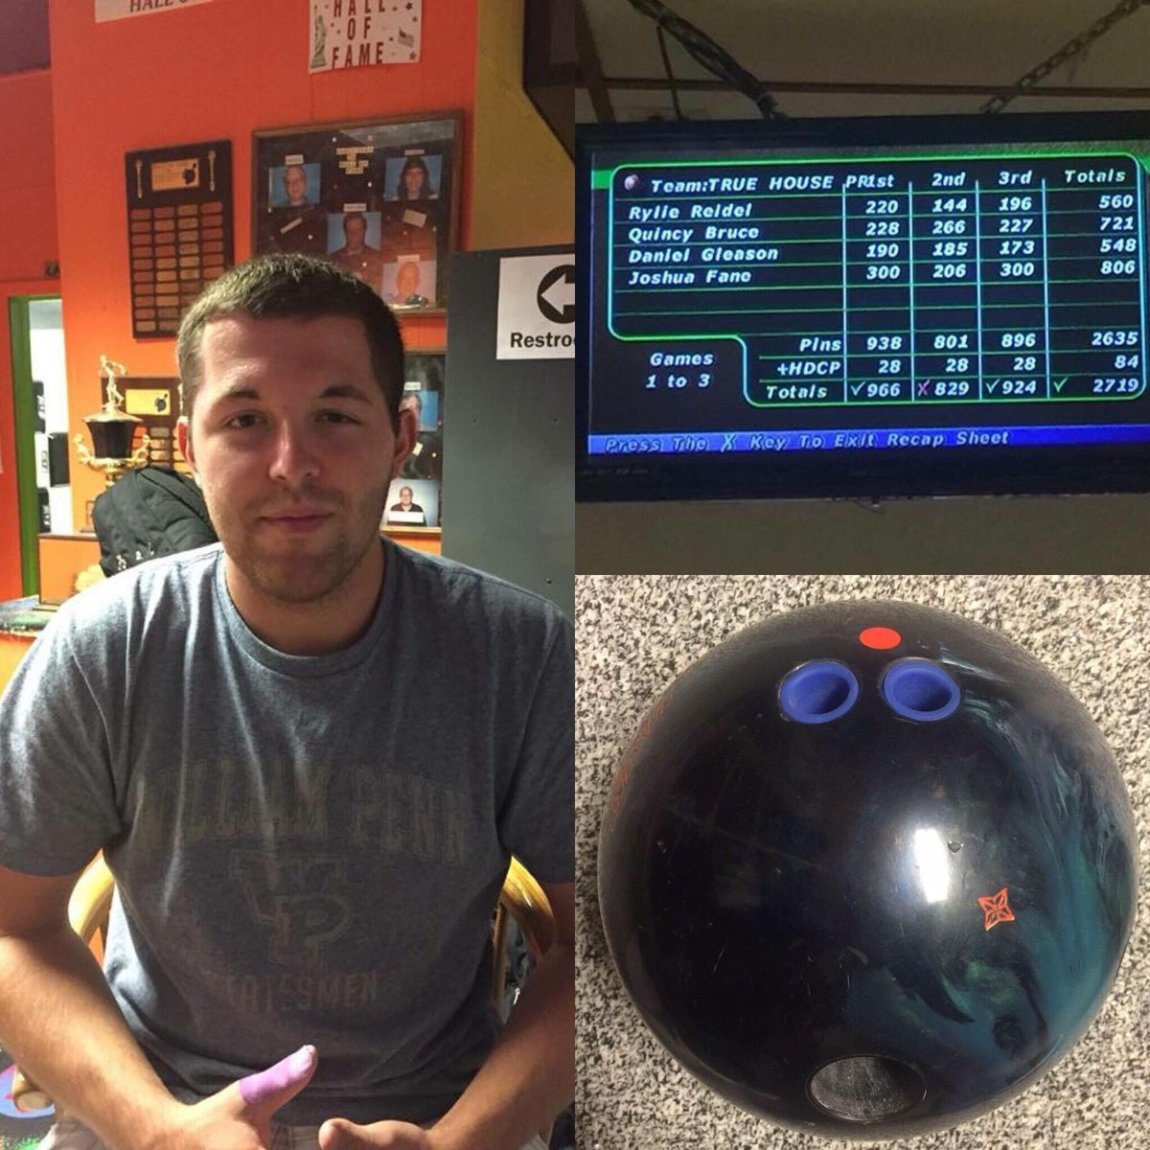 test Twitter Media - What a night on the lanes for Josh Fane! He set a new personal high set and added two 300's with the #DareDevil &  @Storm_Nation IQ Tour. https://t.co/jFXHbinHx7